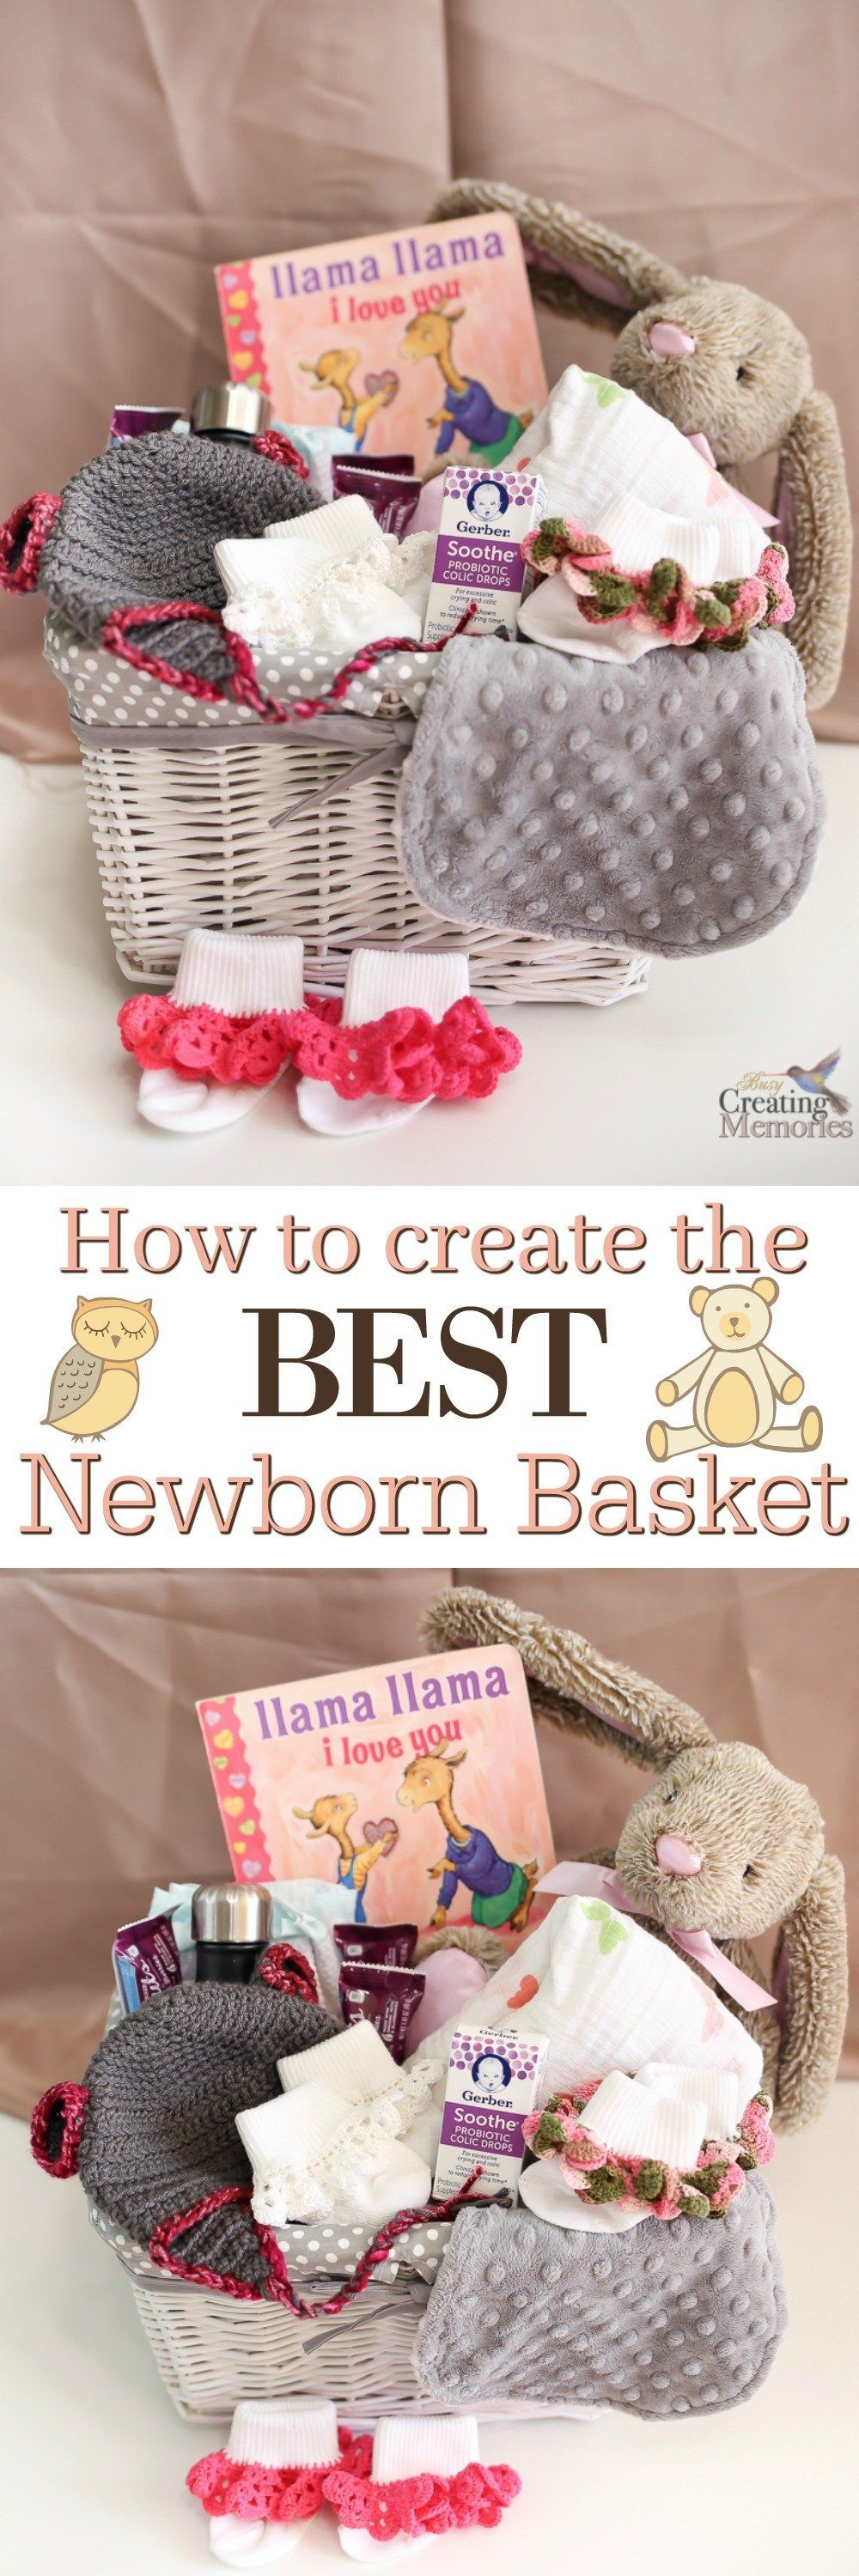 Don't give the same old boring gifts after a new baby arrives! Learn how to make the best newborn gift basket and the best items that stand out and help the new mom! via @2creatememories